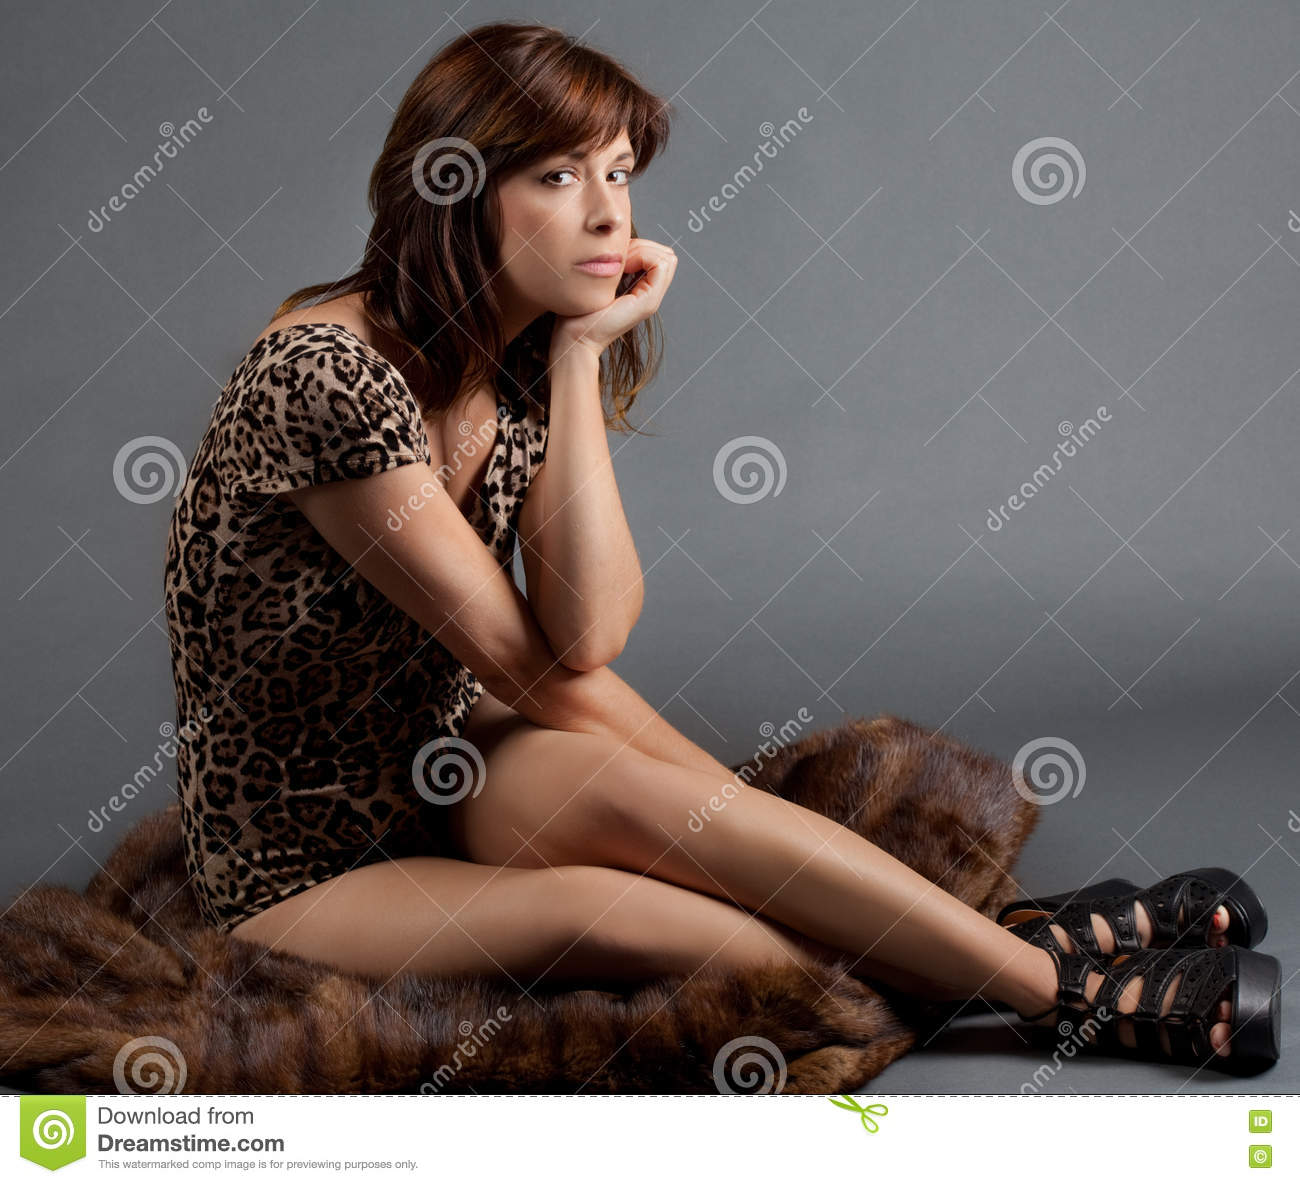 a4fcb9b041a7 An image of a young woman in a leopard print leotard sitting on fur and  looking bored